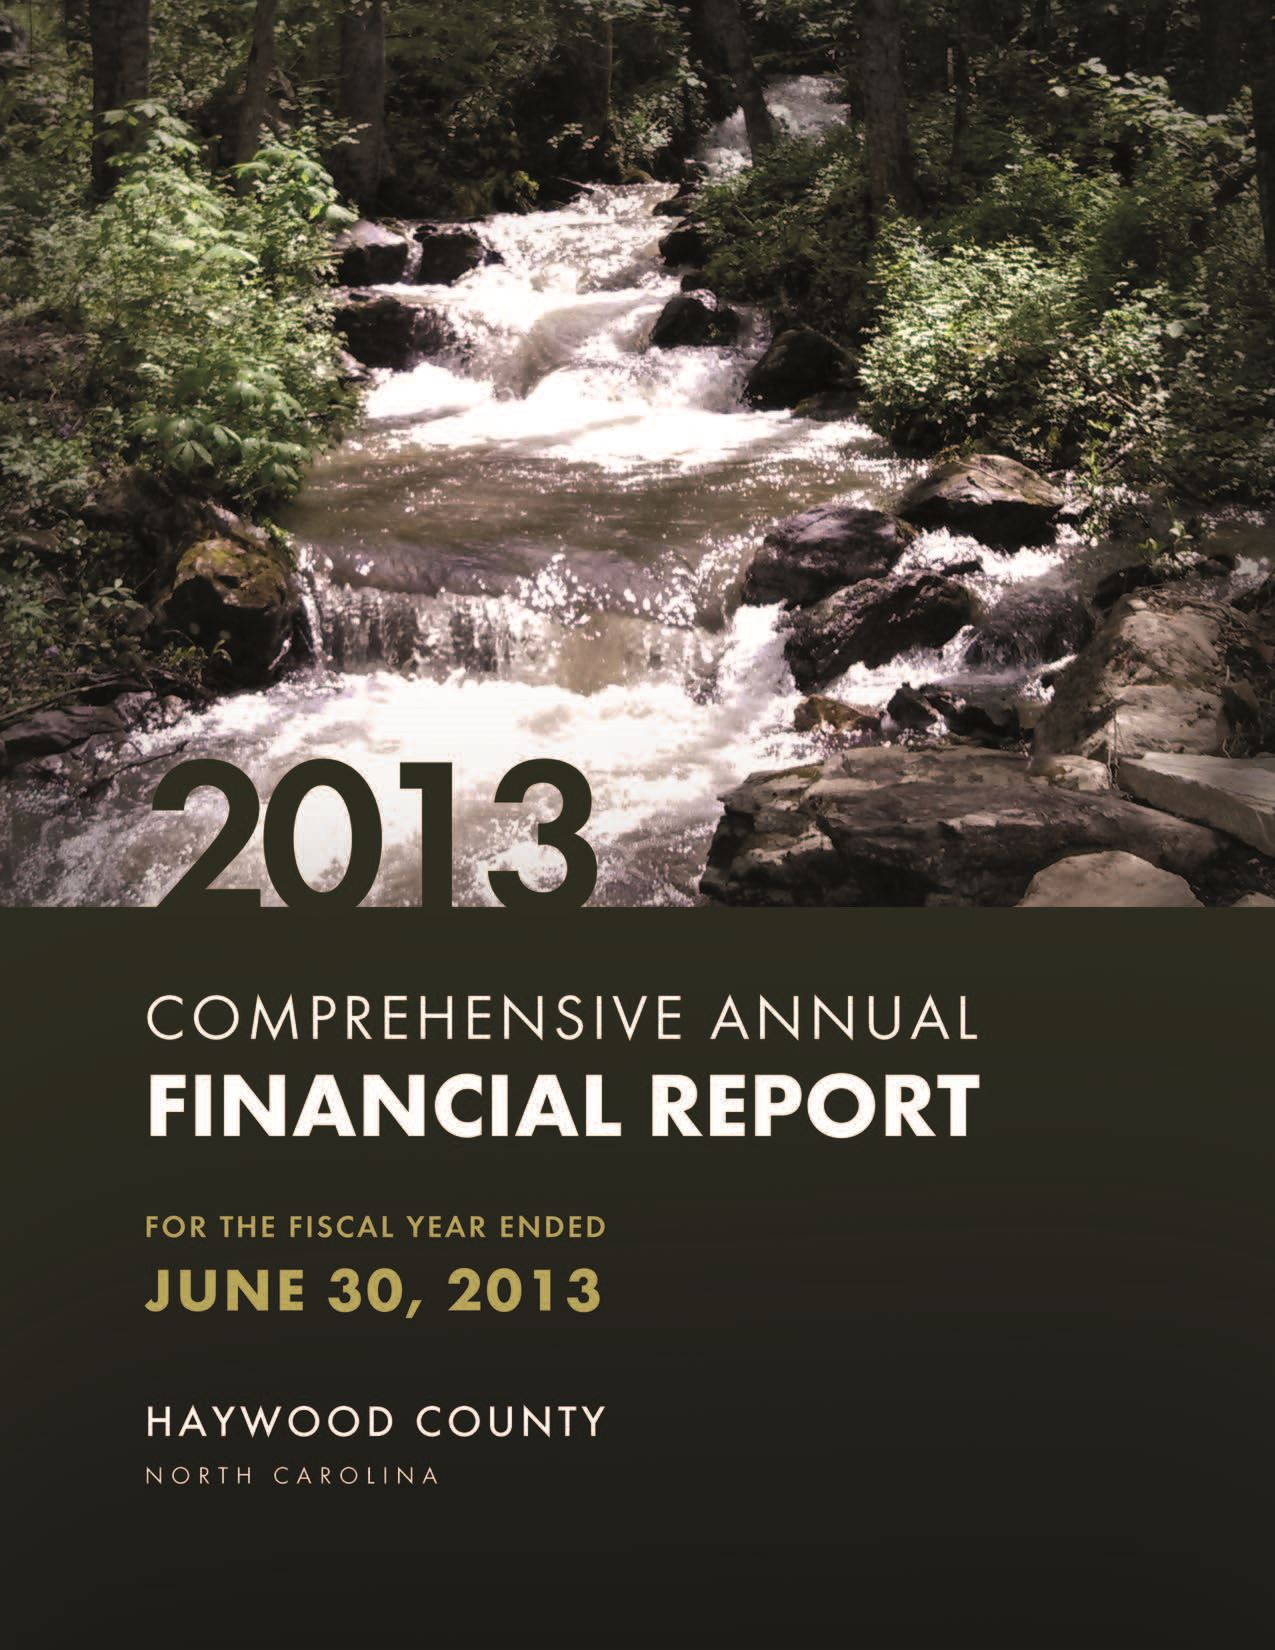 Comprehensive Annual Financial Report 2013 Cover Opens in new window